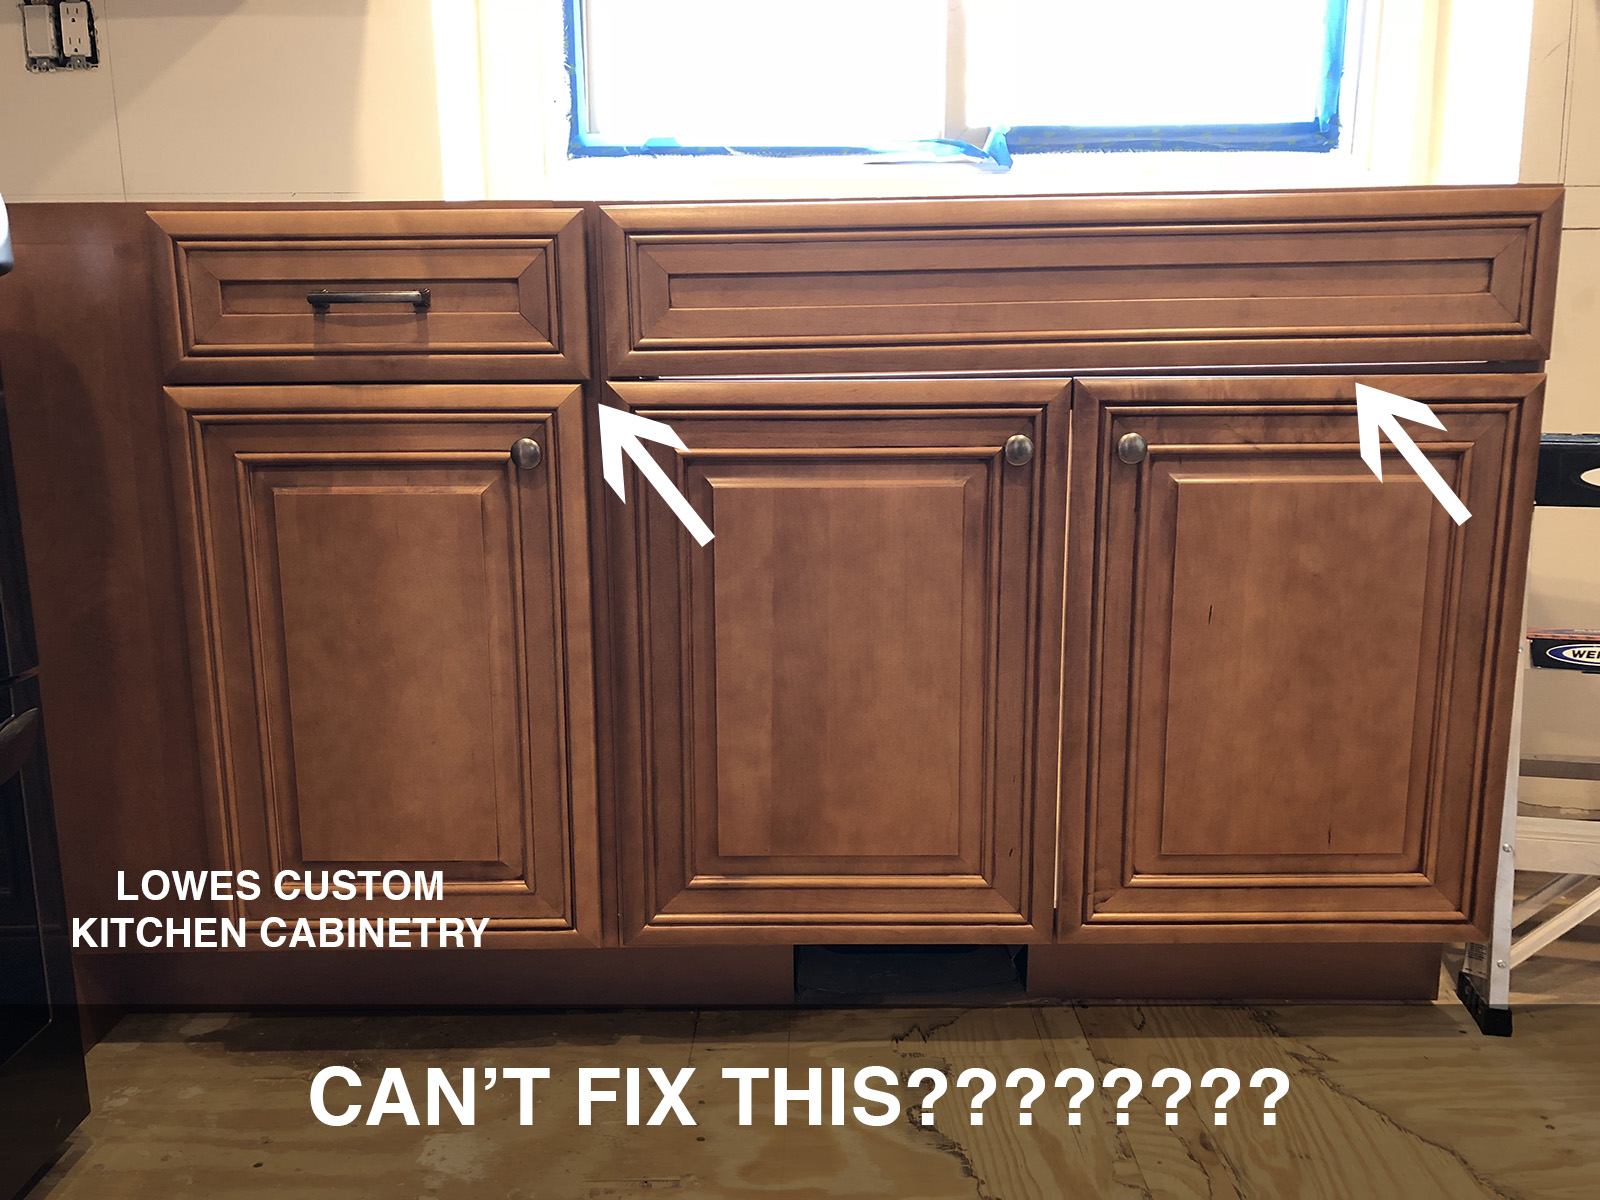 50 Reviews of Lowe's Kitchen Cabinets